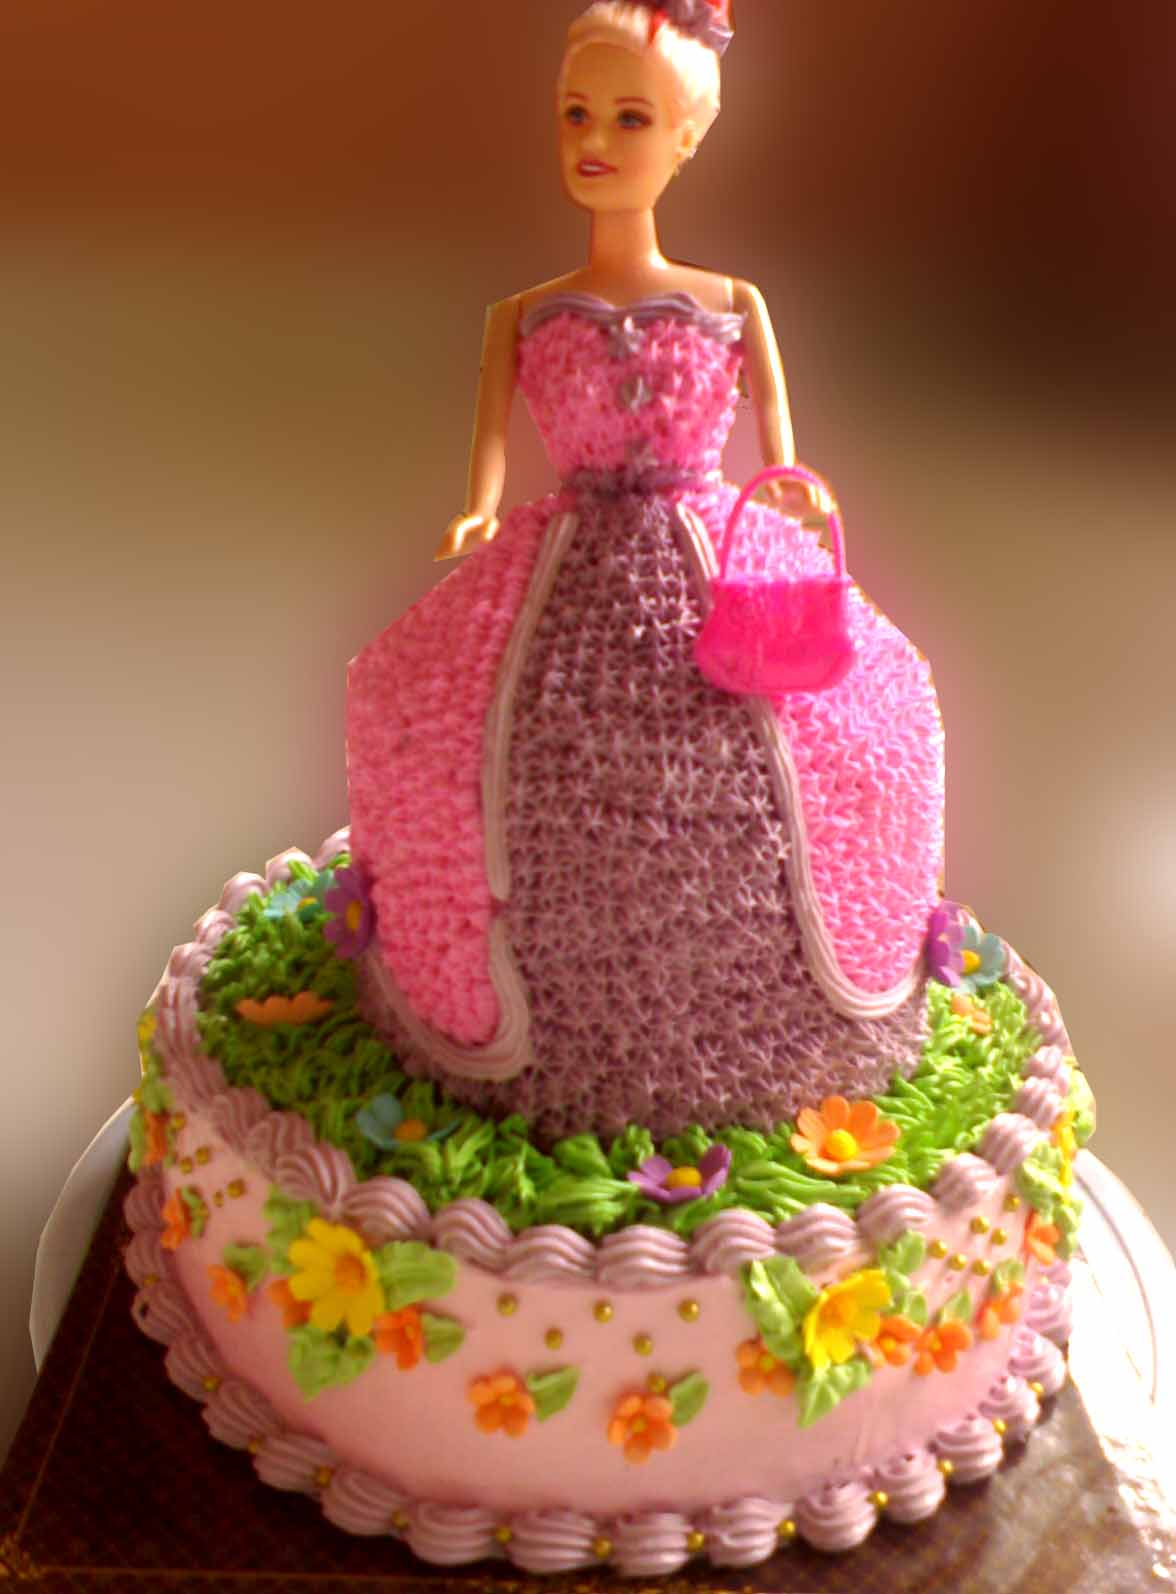 Images Of A Barbie Cake : Birthday barbie cakes Birthday Party Ideas